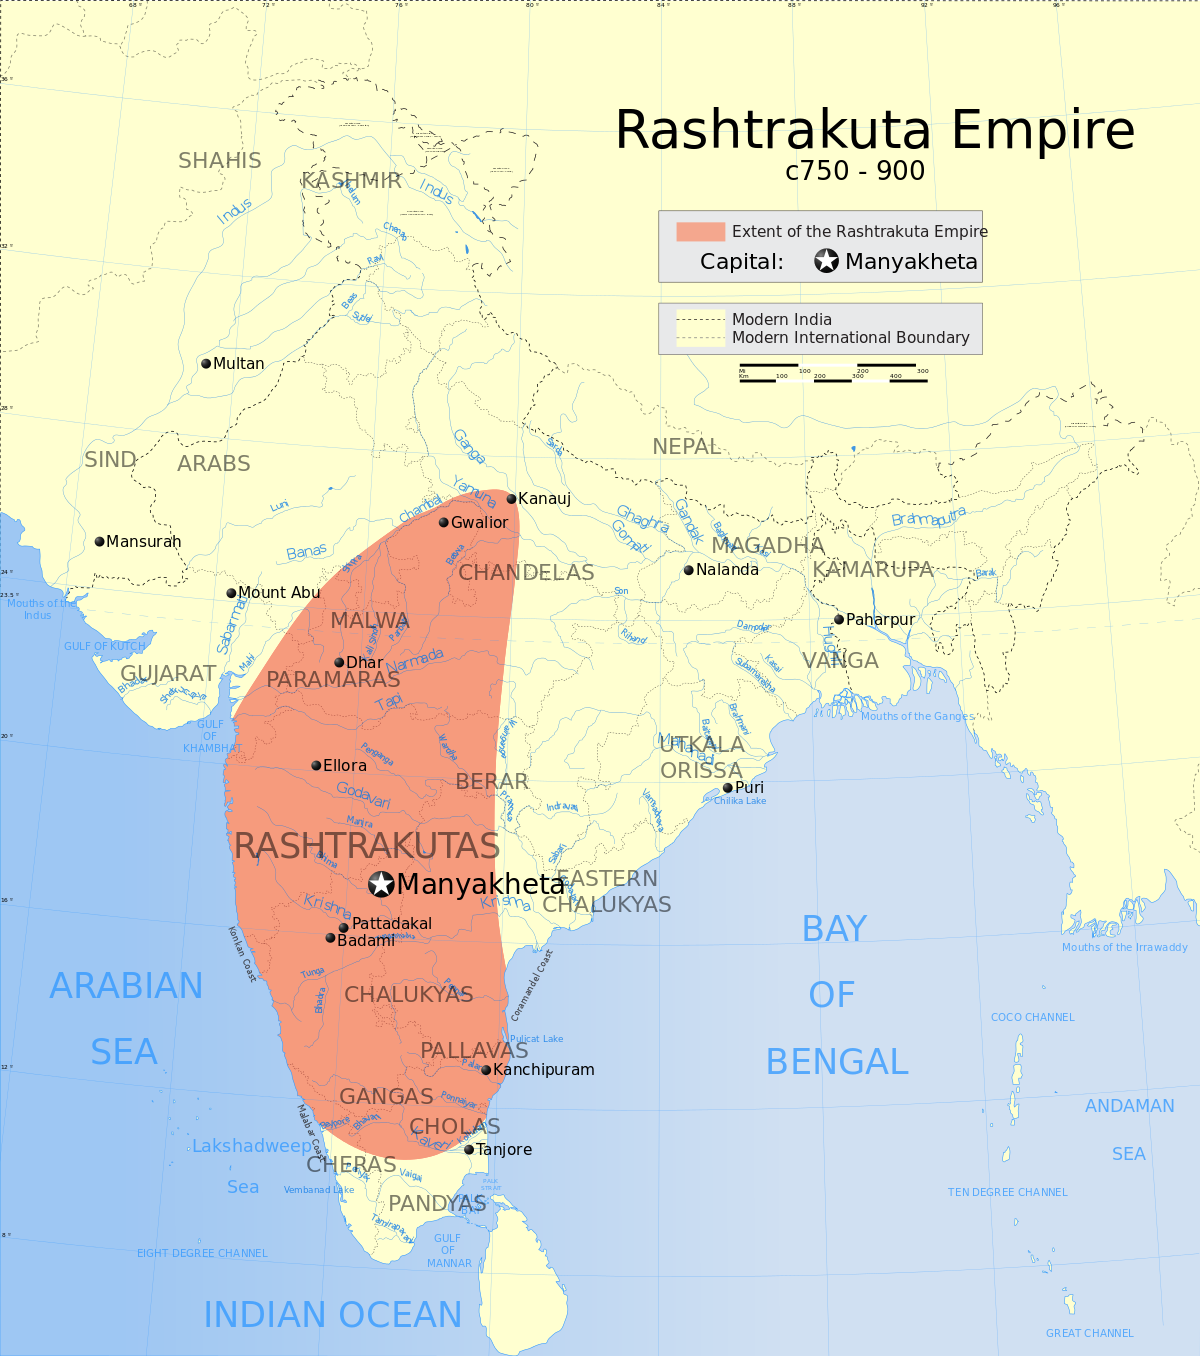 The Rashtrakutas (750-900)